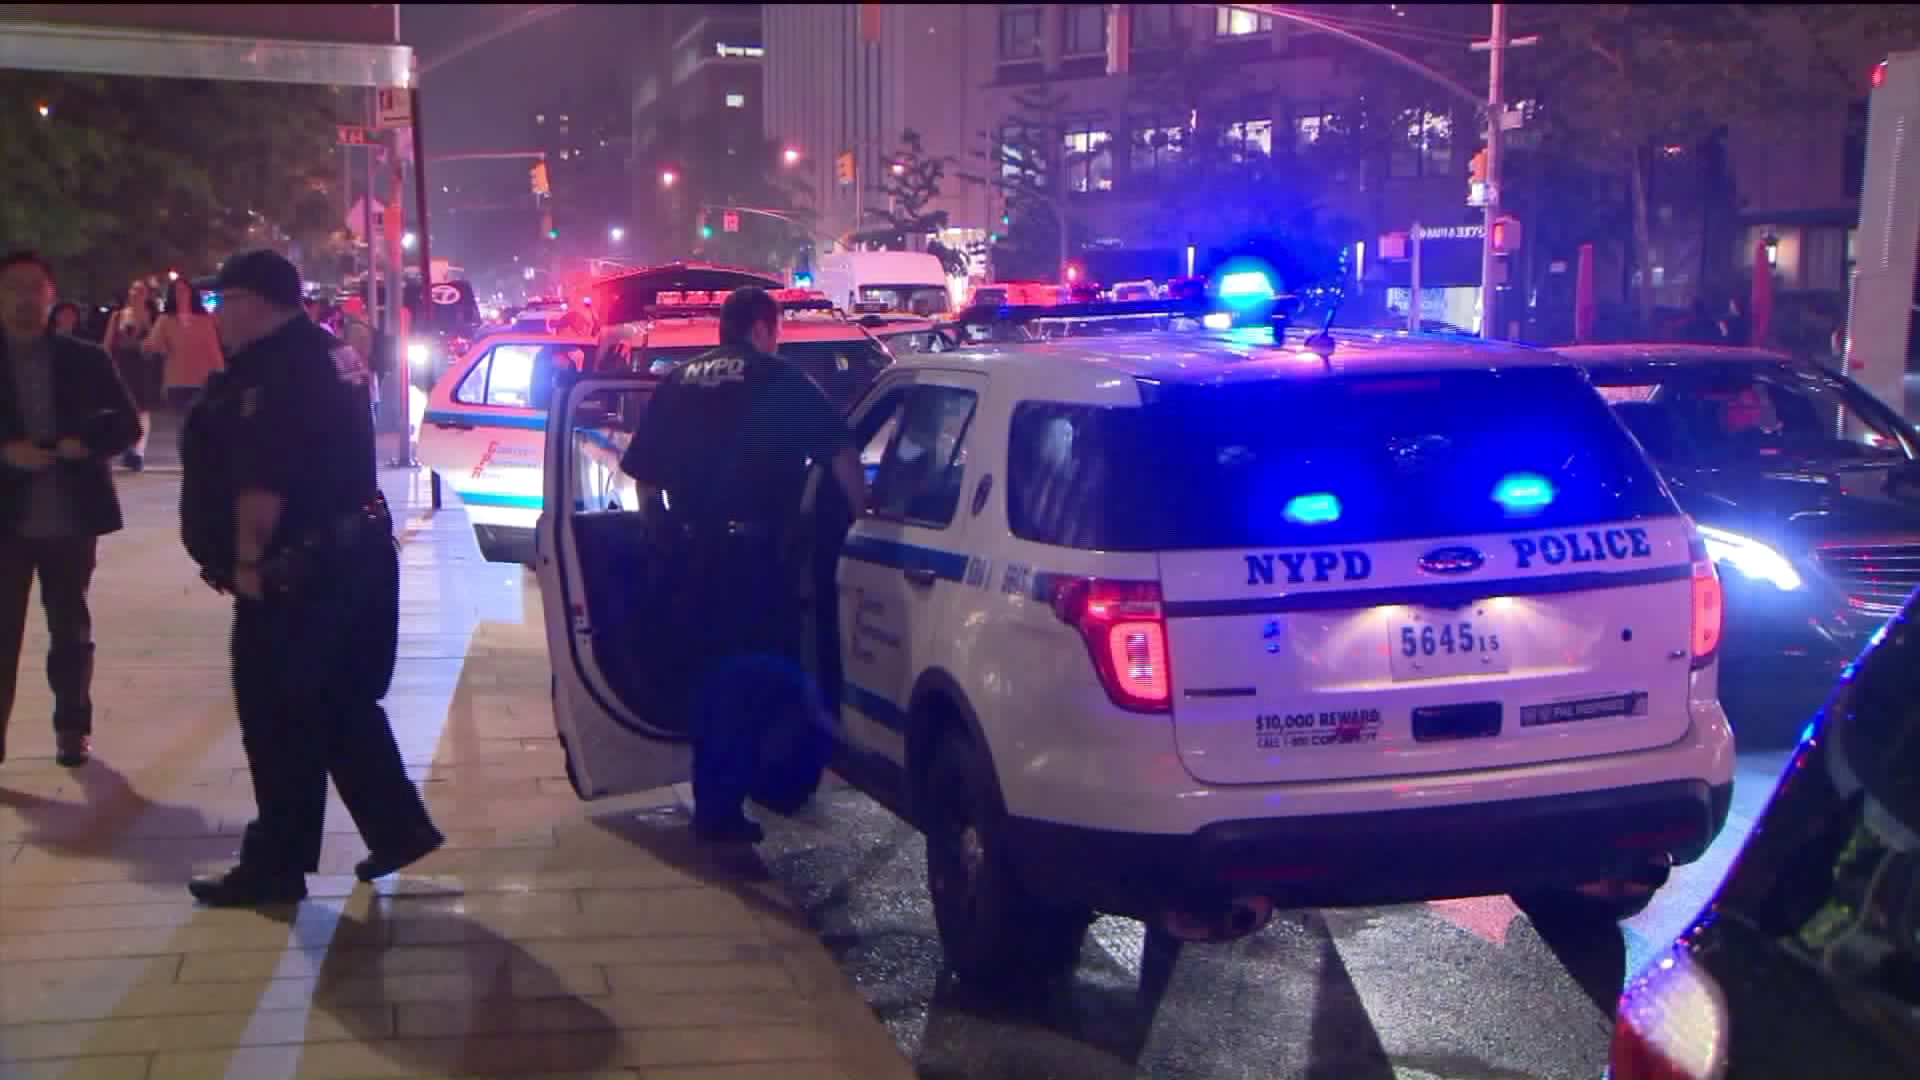 Security Stepped Up in NYC After Deadly UK Blast